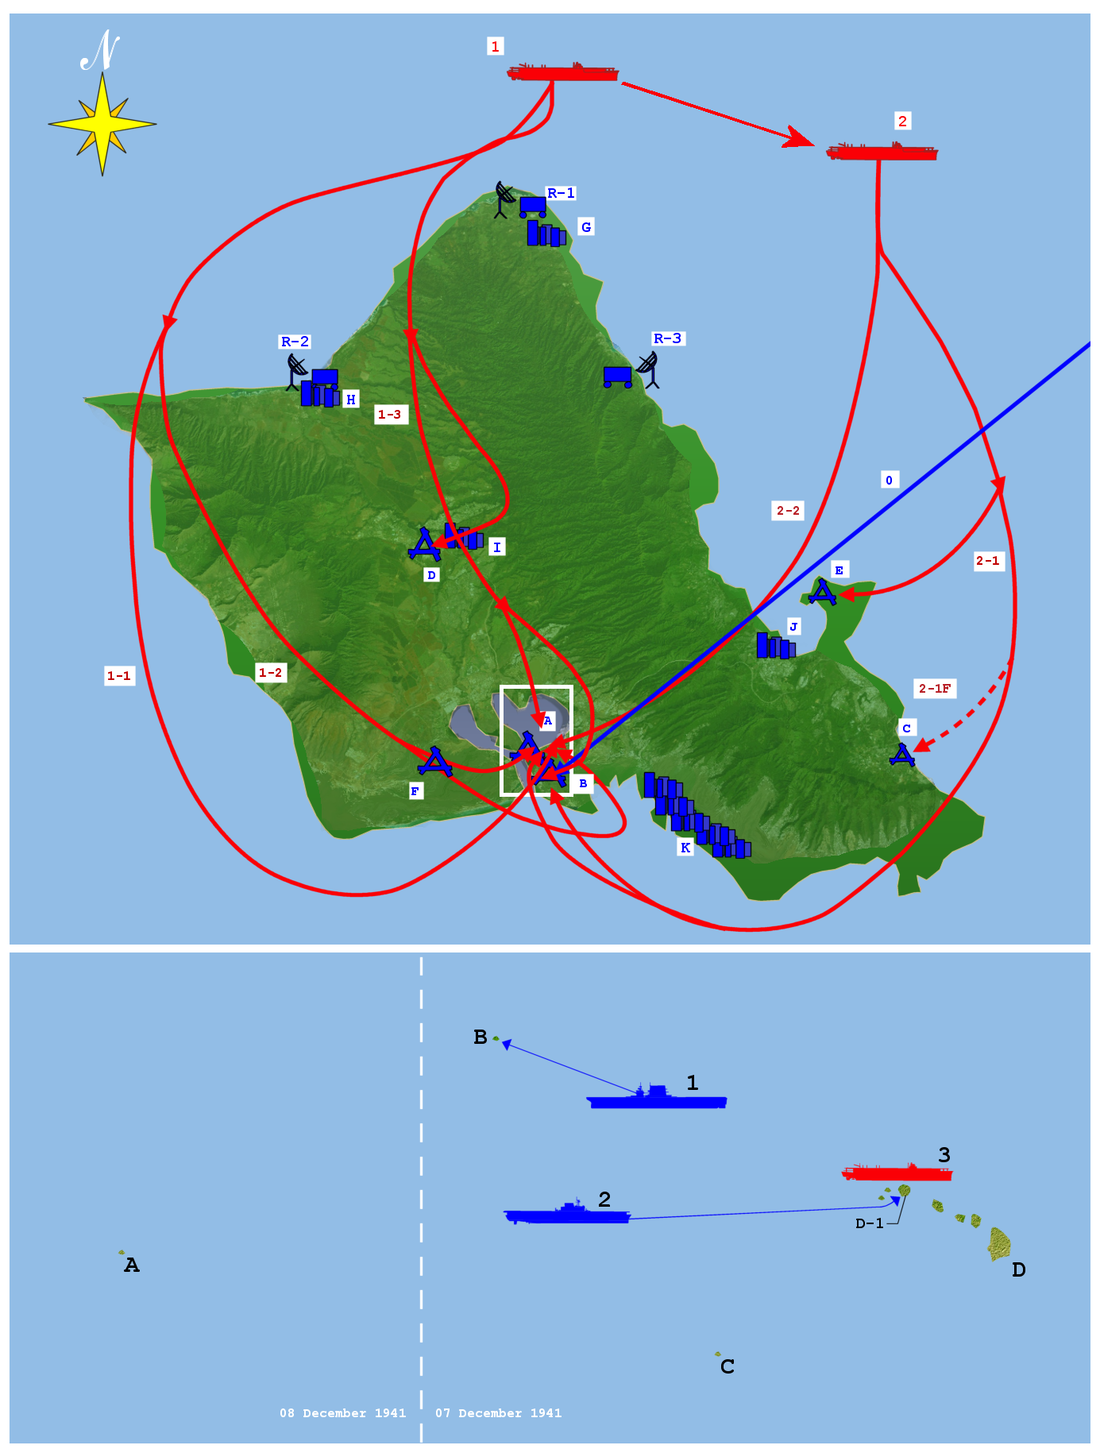 The Japanese attacked in two waves. The first wave was detected by United States Army radar at 136 nautical miles (252 km), but was misidentified as United States Army Air Forces bombers arriving from the American mainland. Top: A: Ford Island NAS. B: Hickam Field. C: Bellows Field. D: Wheeler Field. E: Kaneohe NAS. F: Ewa MCAS. R-1: Opana Radar Station. R-2: Kawailoa RS. R-3: Kaaawa RS. G: Haleiwa. H: Kahuku. I: Wahiawa. J: Kaneohe. K: Honolulu. 0: B-17s from mainland. 1: First strike group. 1-1: Level bombers. 1-2: Torpedo bombers. 1-3: Dive bombers. 2: Second strike group. 2-1: Level bombers. 2-1F: Fighters. 2-2: Dive bombers. Bottom: A: Wake Island. B: Midway Islands. C: Johnston Island. D: Hawaii. D-1: Oahu. 1: USS Lexington. 2: USS Enterprise. 3: First Air Fleet. Pearlmap1.png